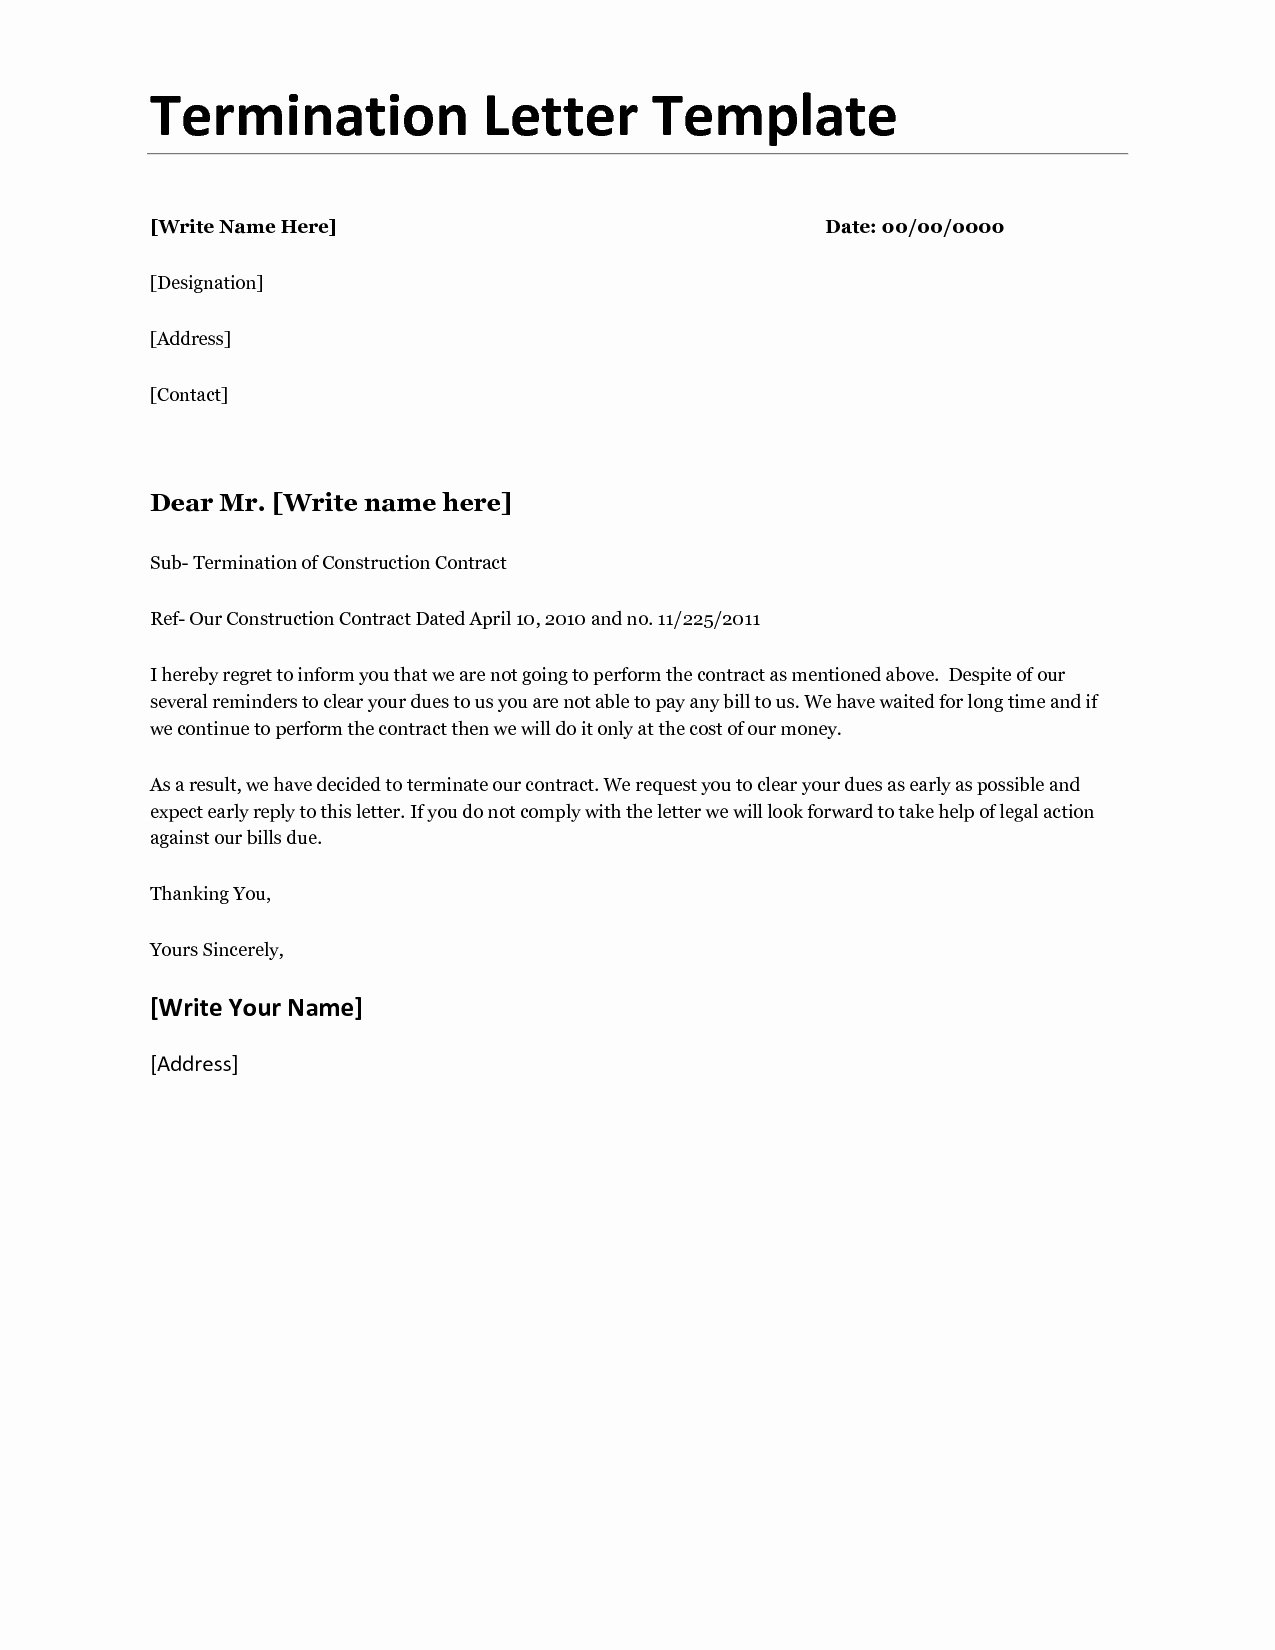 Business Contract Termination Letter Template Luxury Business Termination Letter Template Samples for Your